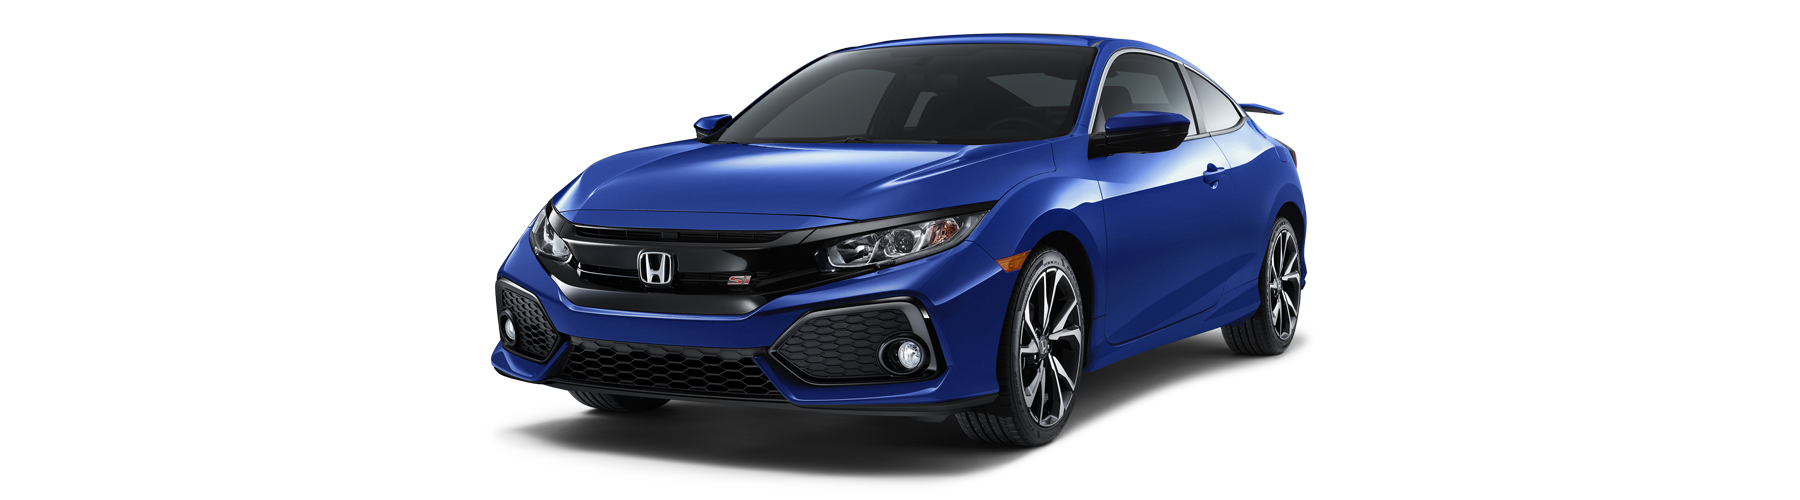 2017 Honda Civic Si Coupe Front Angle